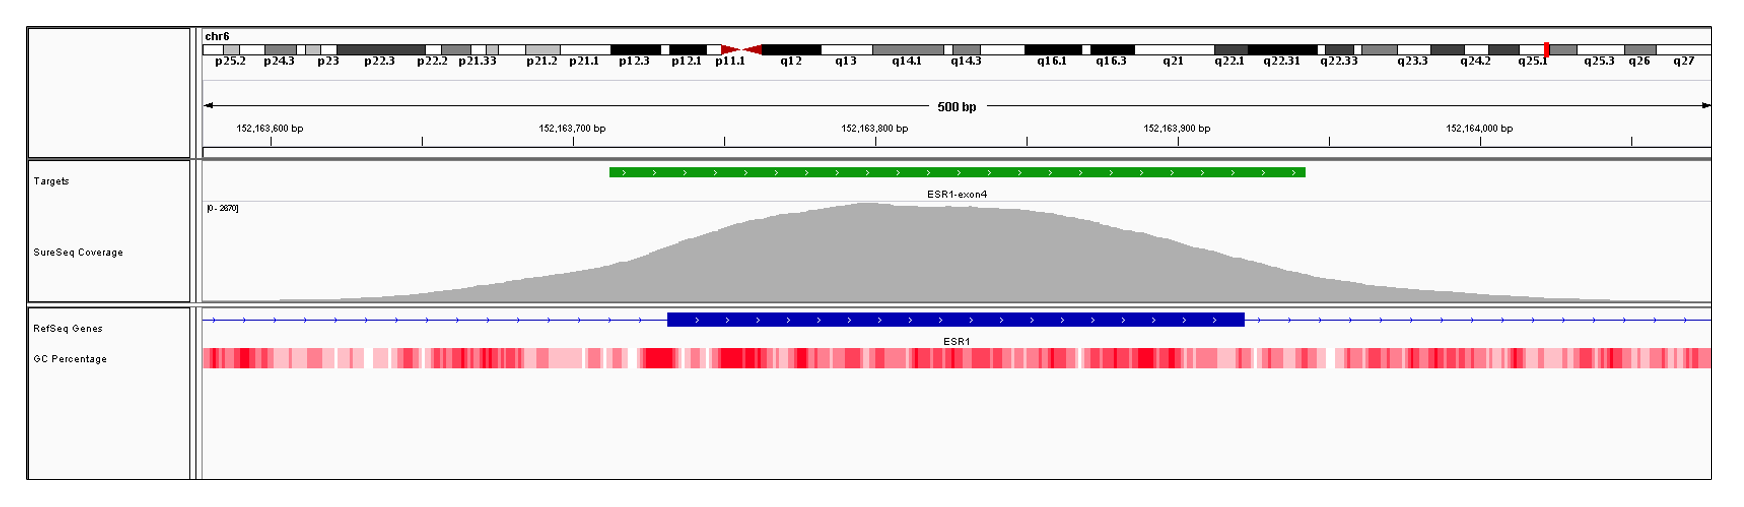 ESR1 Exon 4 (hg19 chr6:152163732-152163922). Depth of coverage per base (grey). Targeted region (green). Gene coding region as defined by RefSeq (blue). GC percentage (red). Image